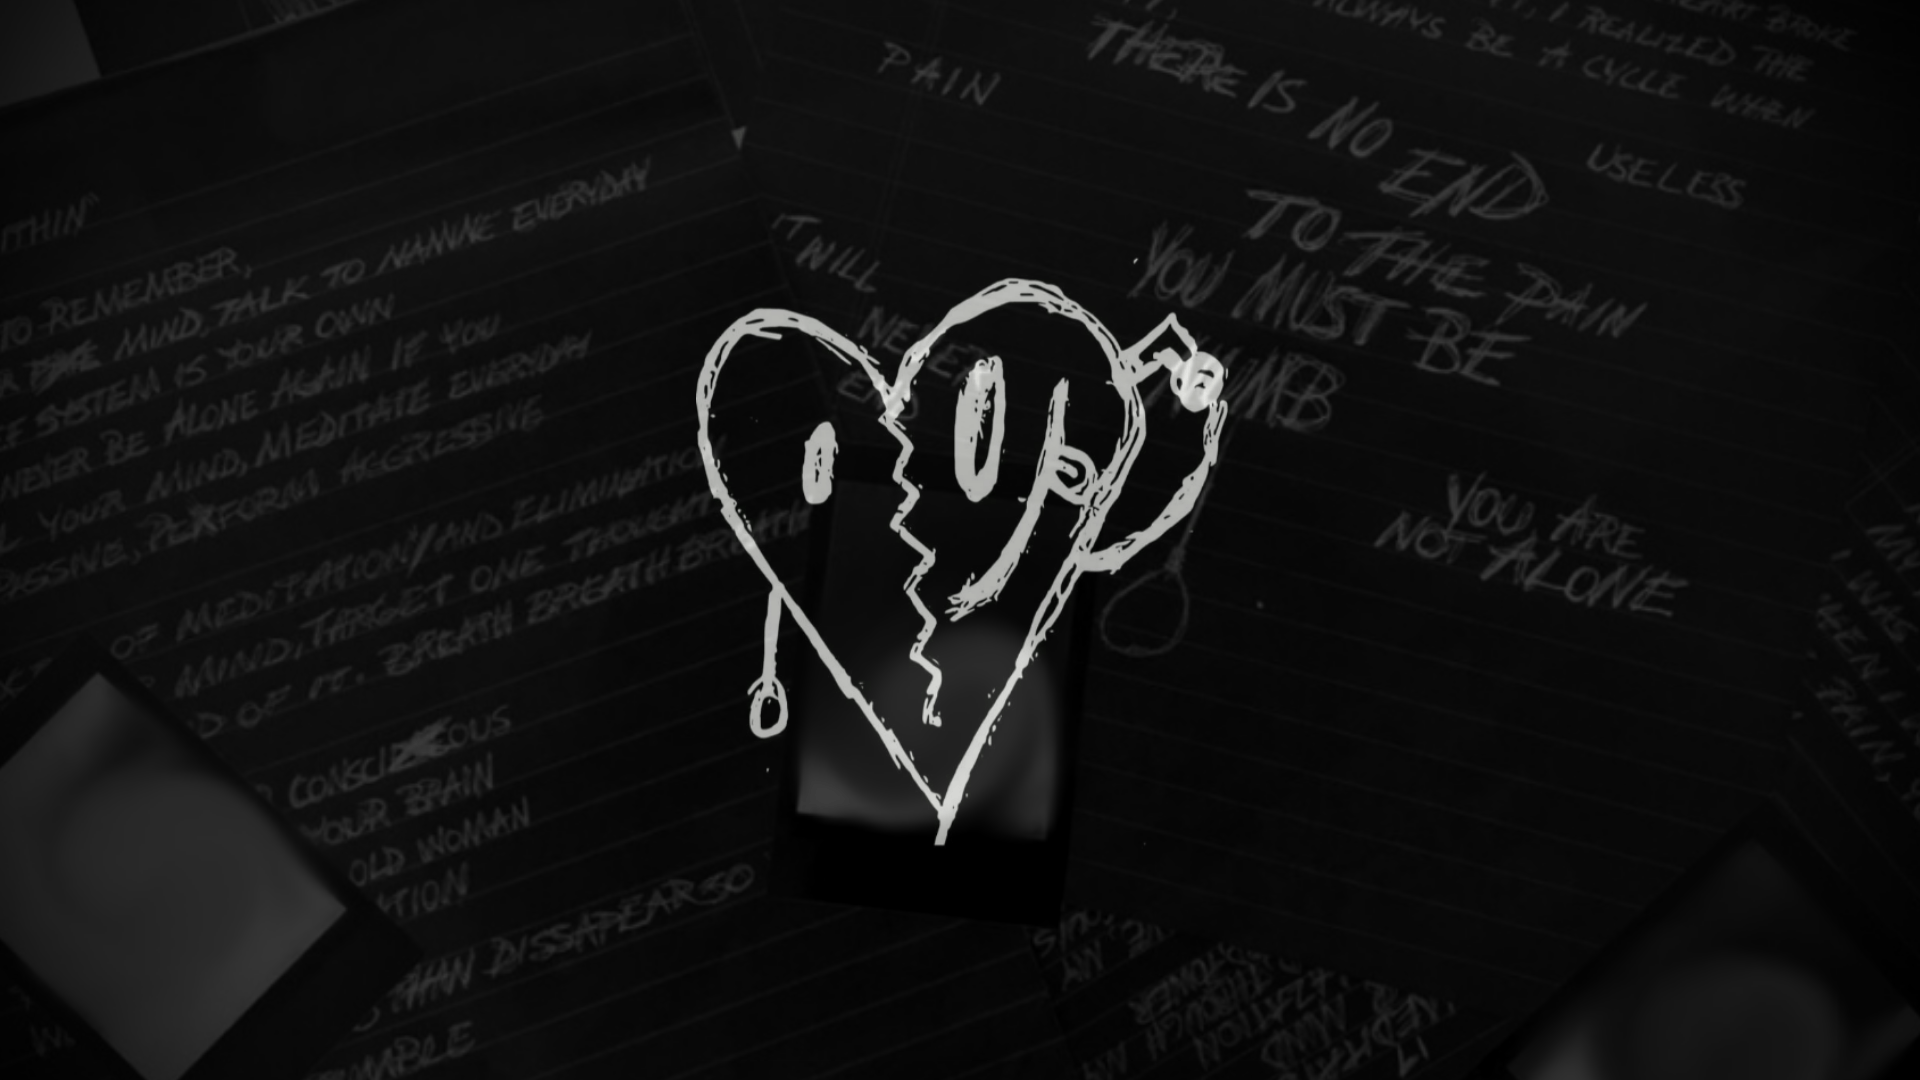 1920x1080 Just an X wallpaper I made, thoughts? :) : XXXTENTACION